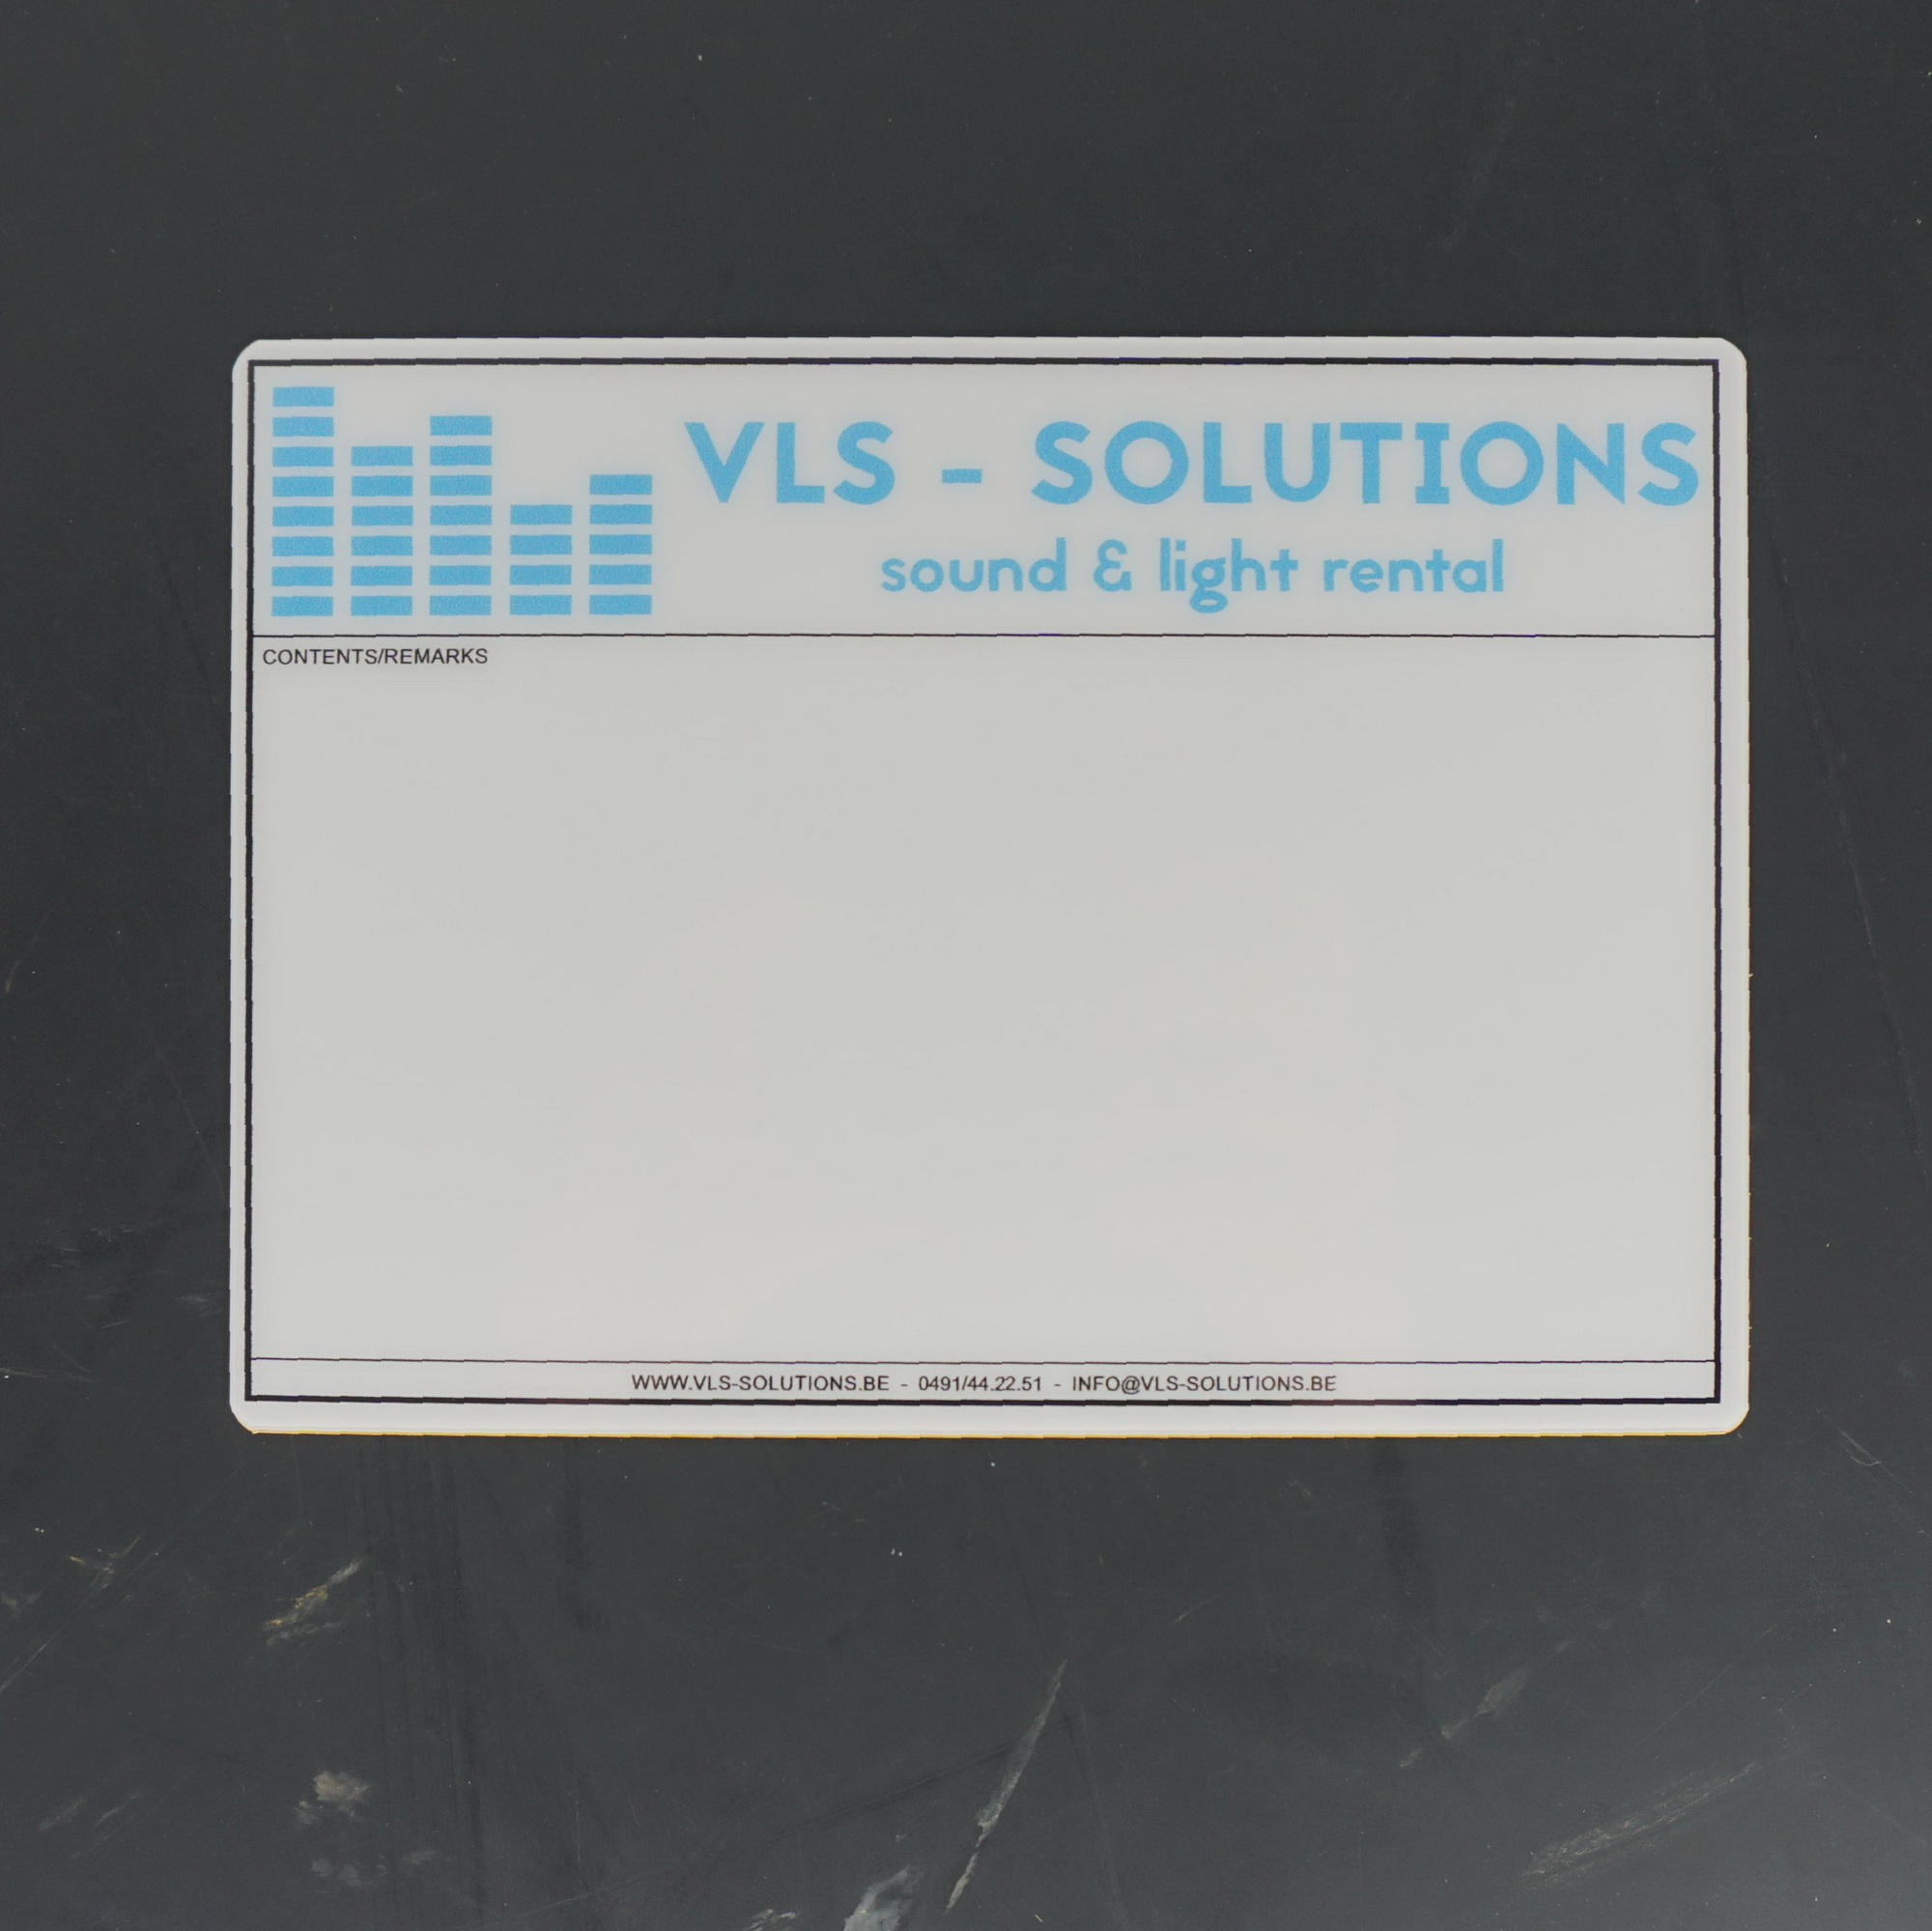 Flightcaselabels Caselabels VLS solutions